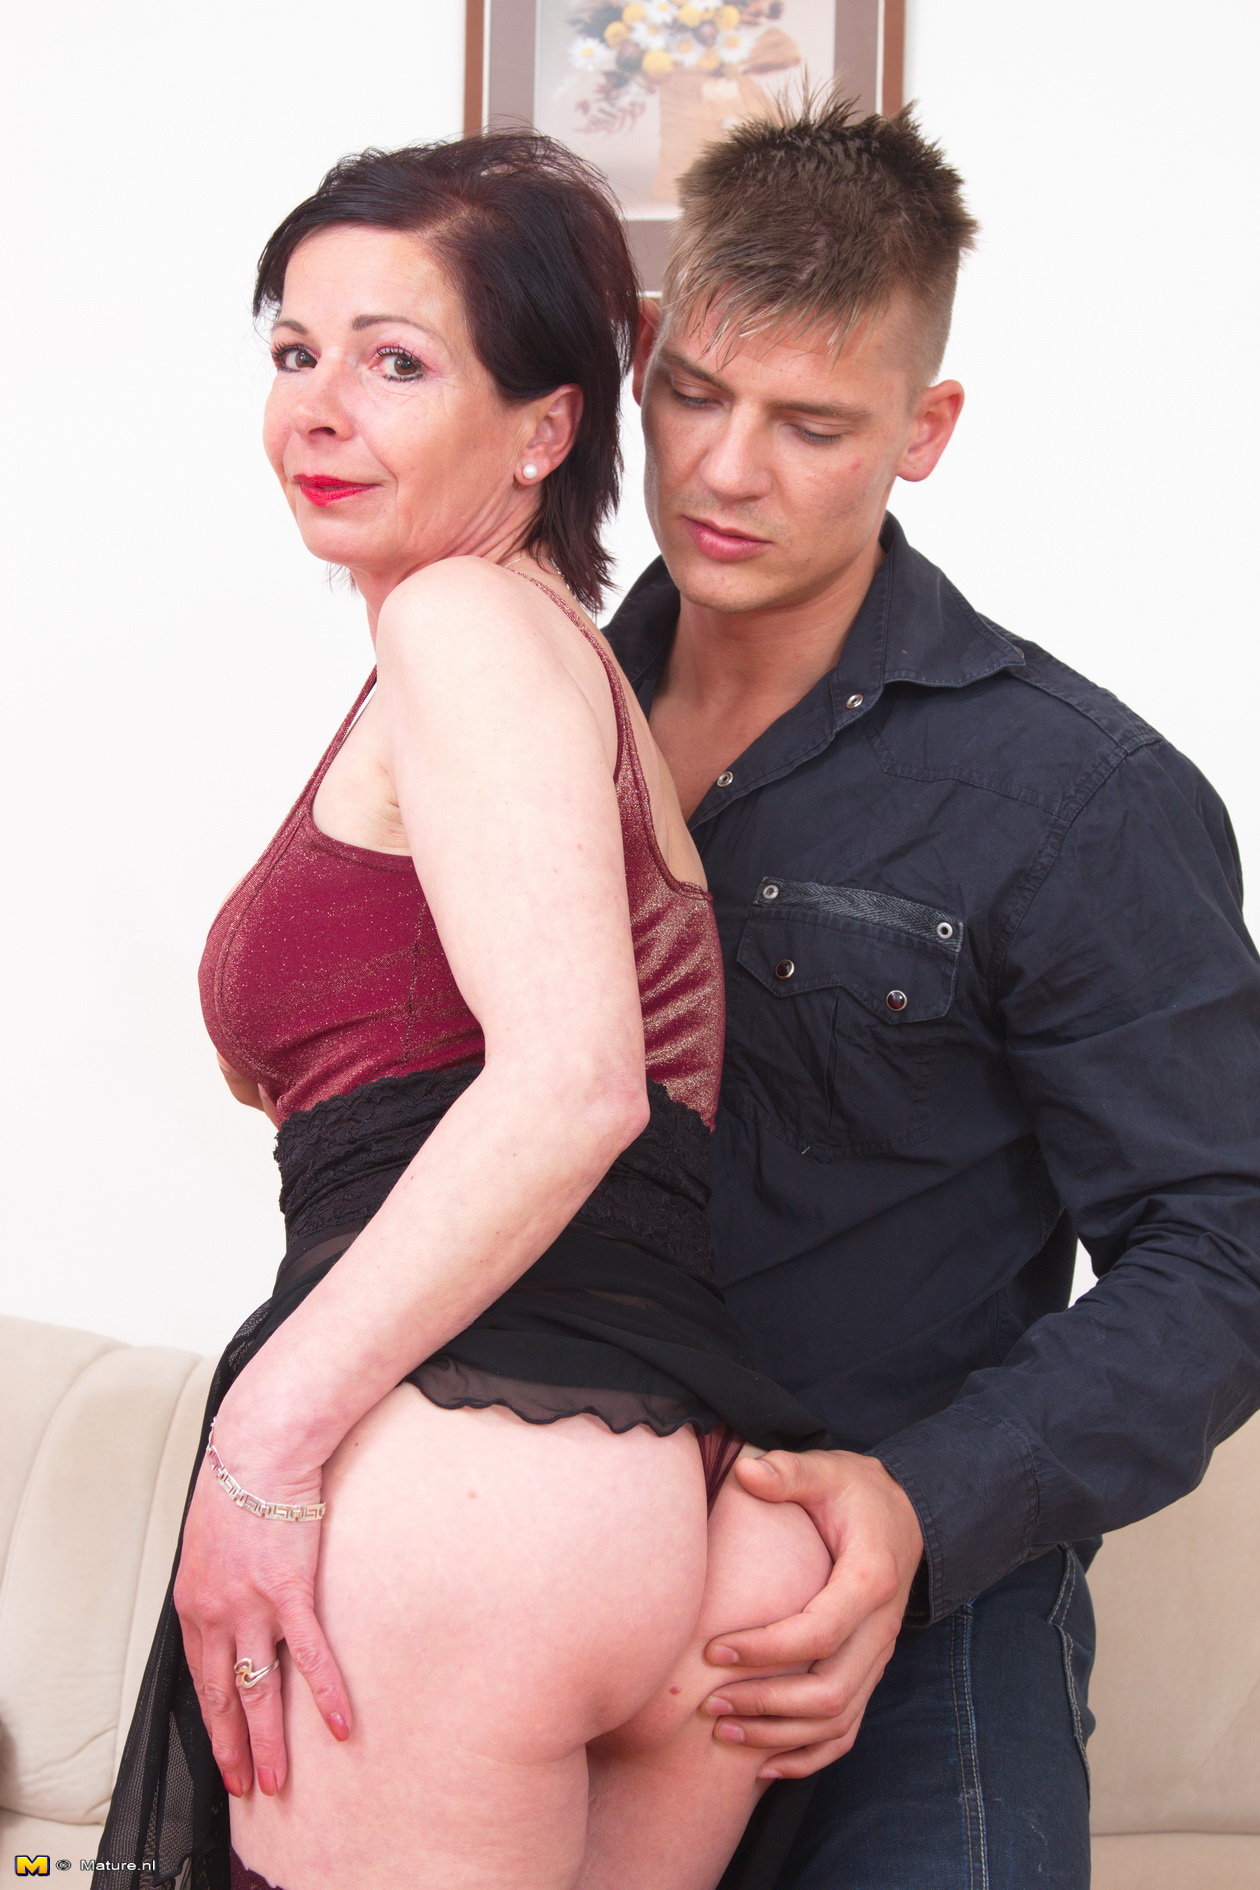 older experienced woman shows a young boy how to make love